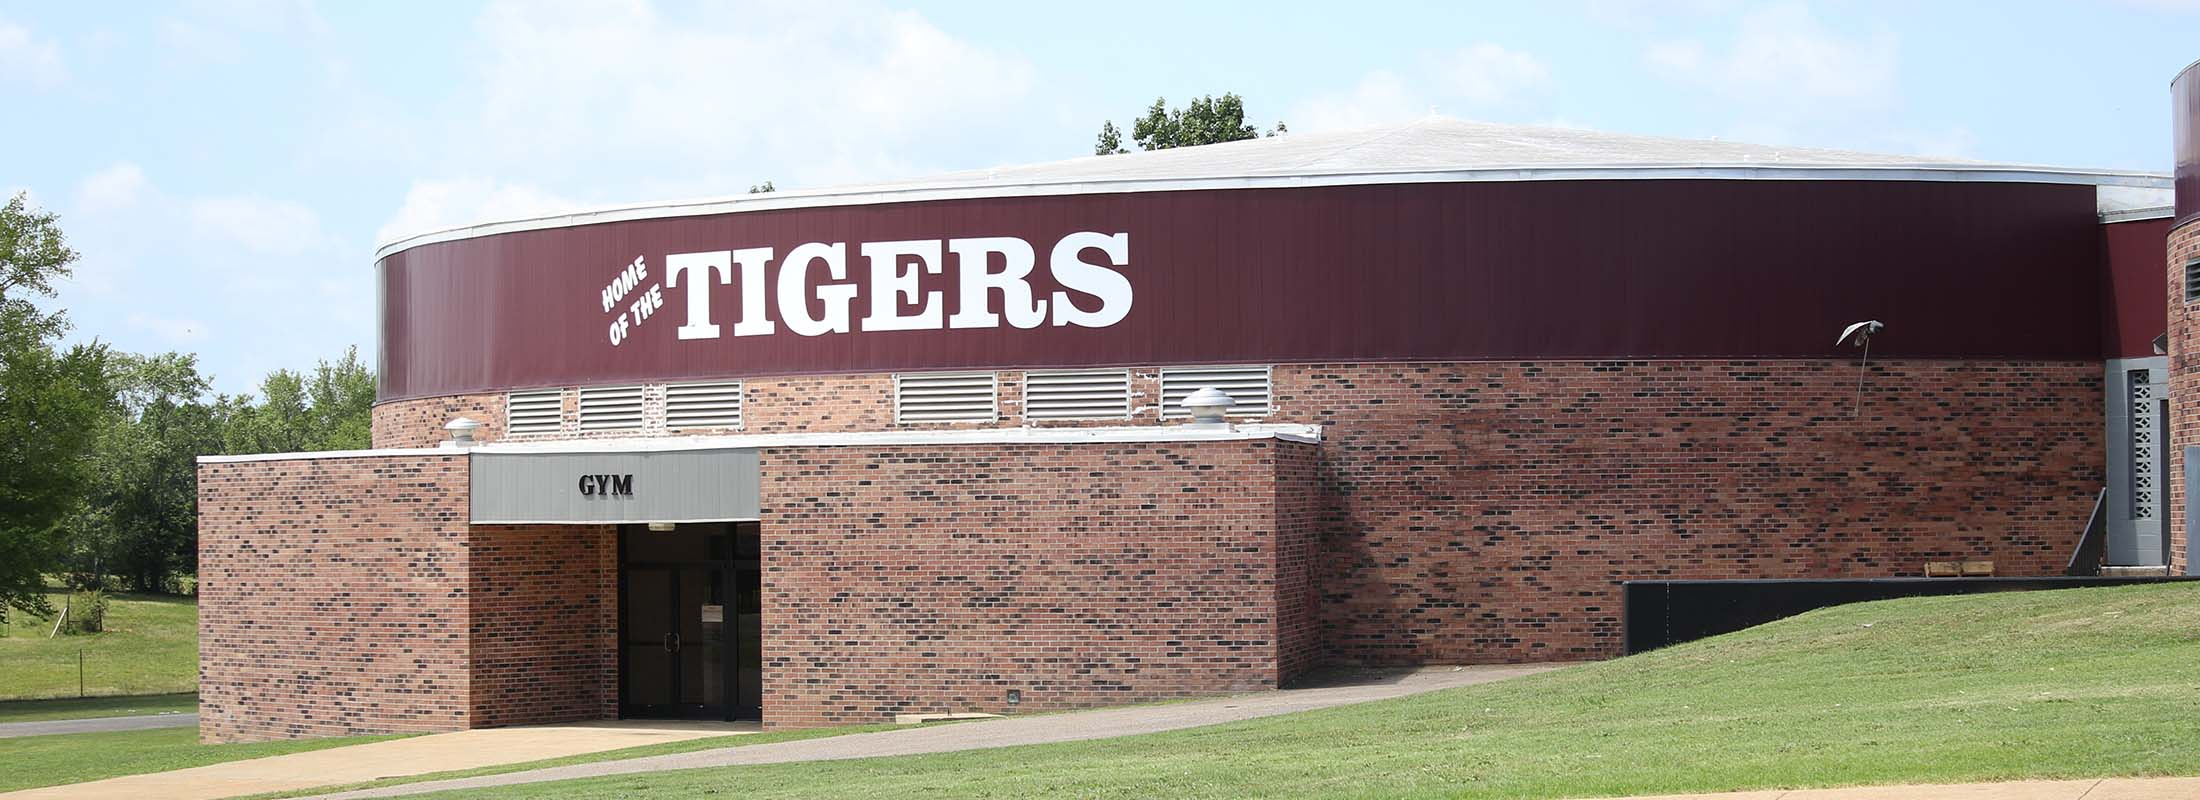 gym home of the tigers